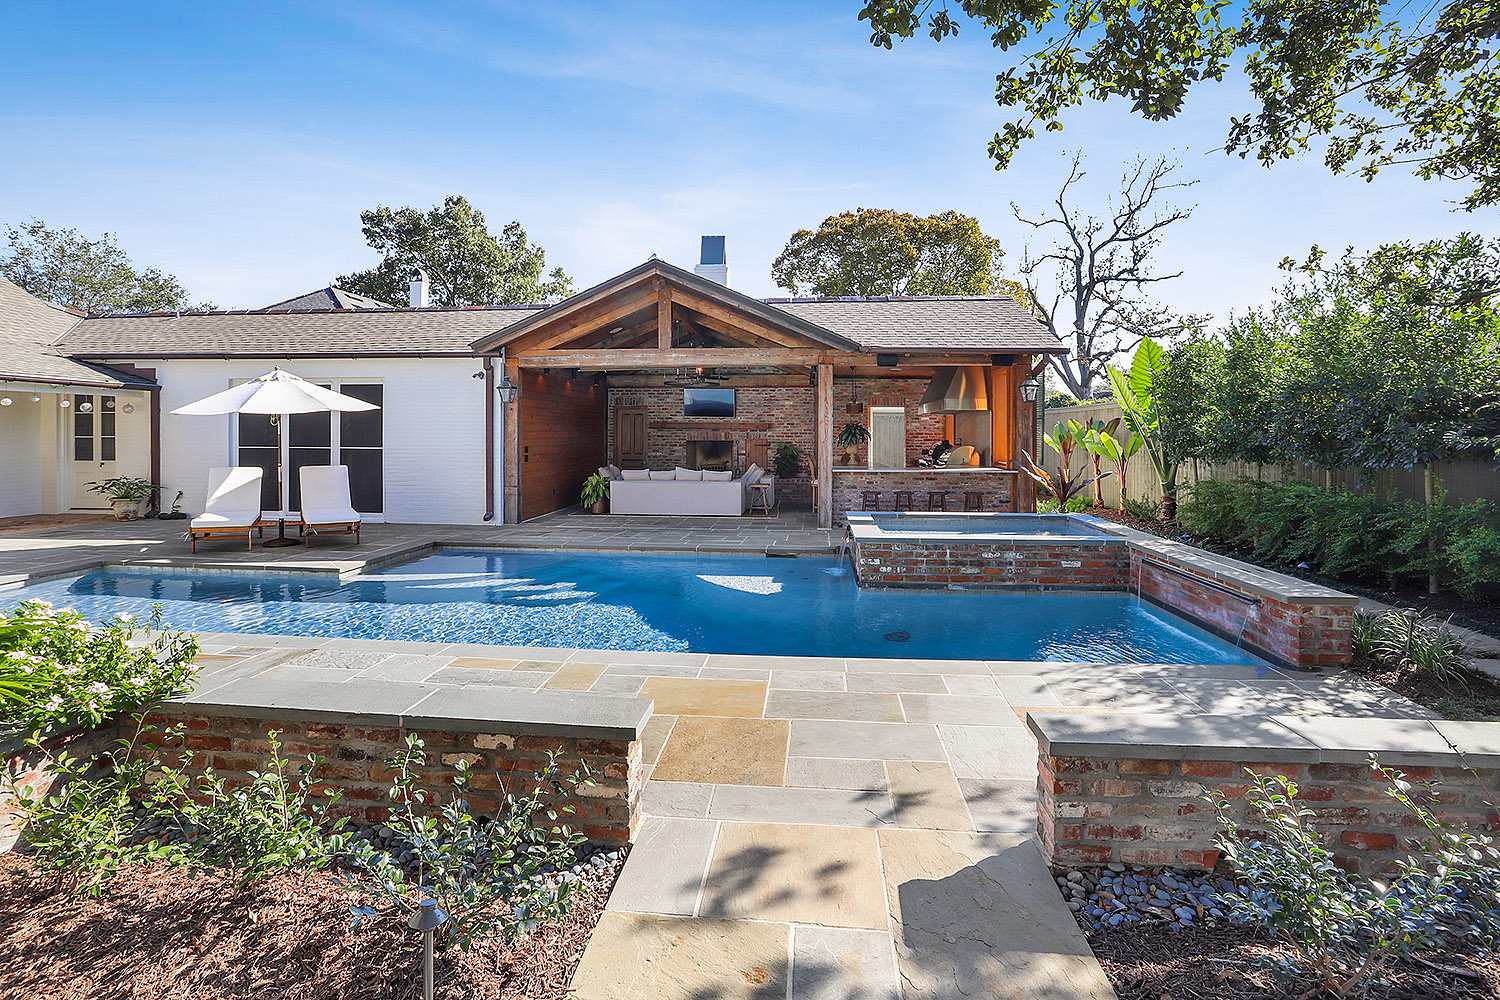 baton rouge pool with outdoor seating and kitchen